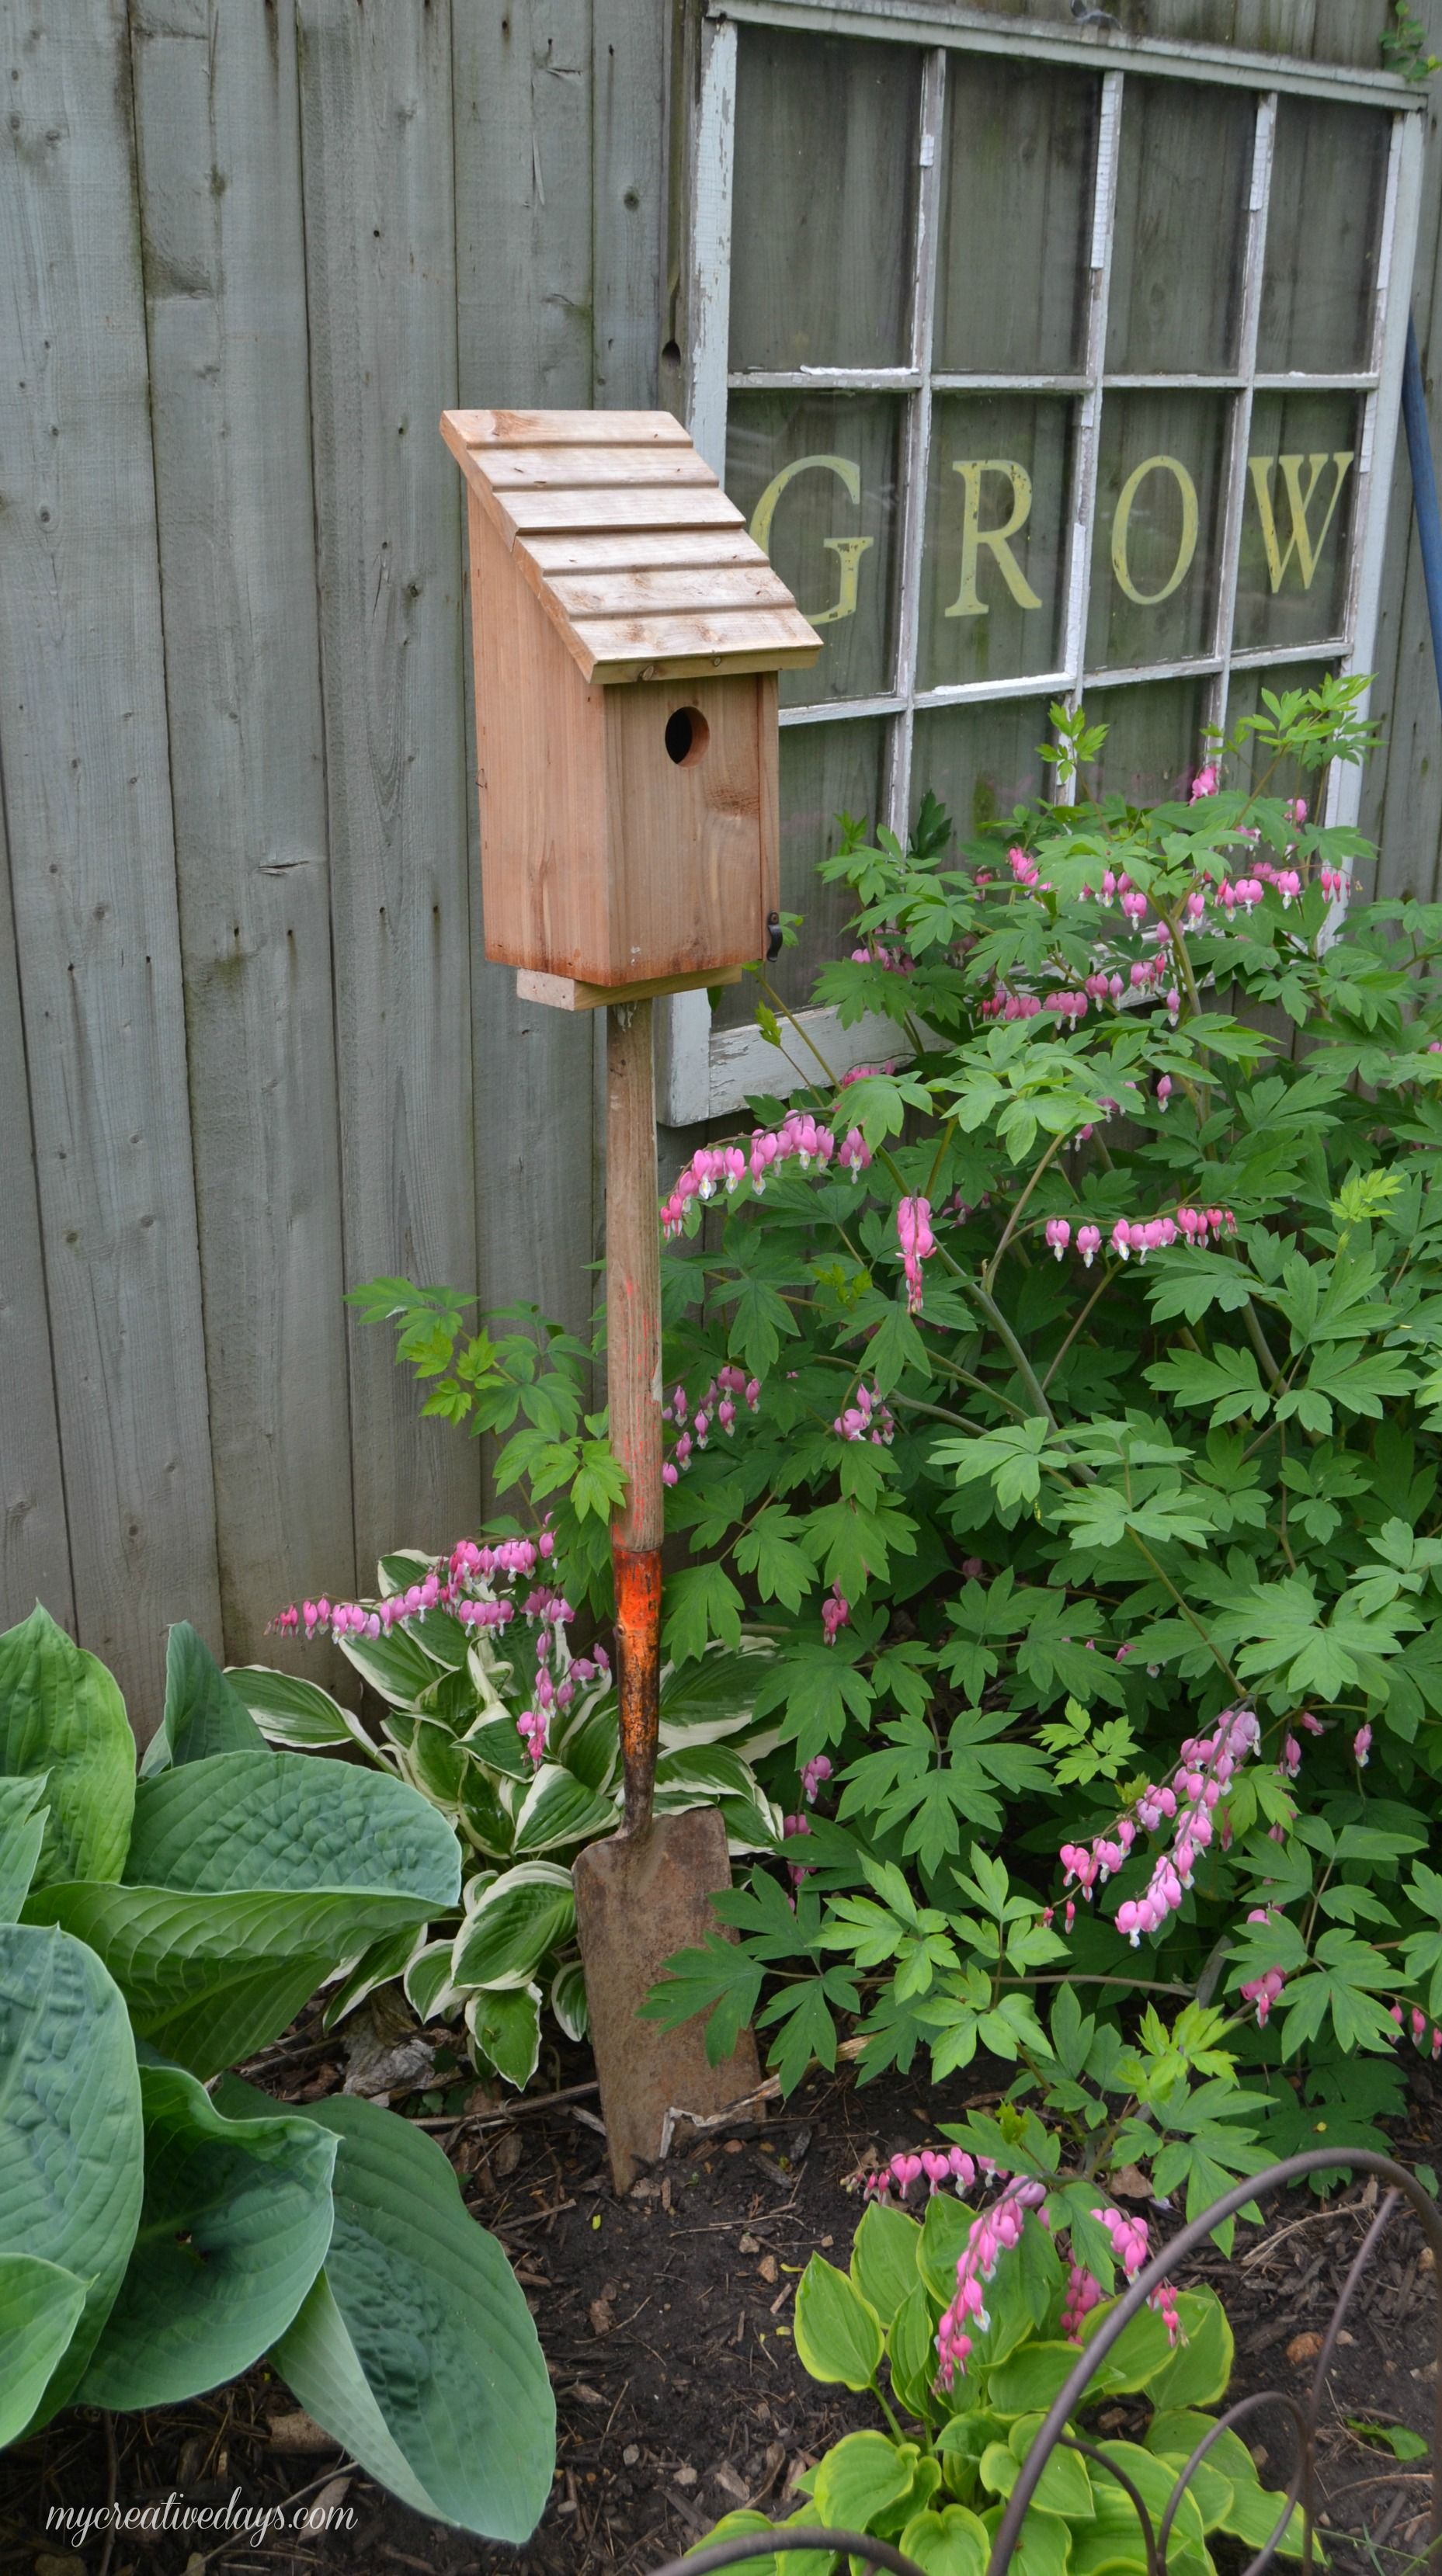 Turn a Shovel Handle into a Bird House